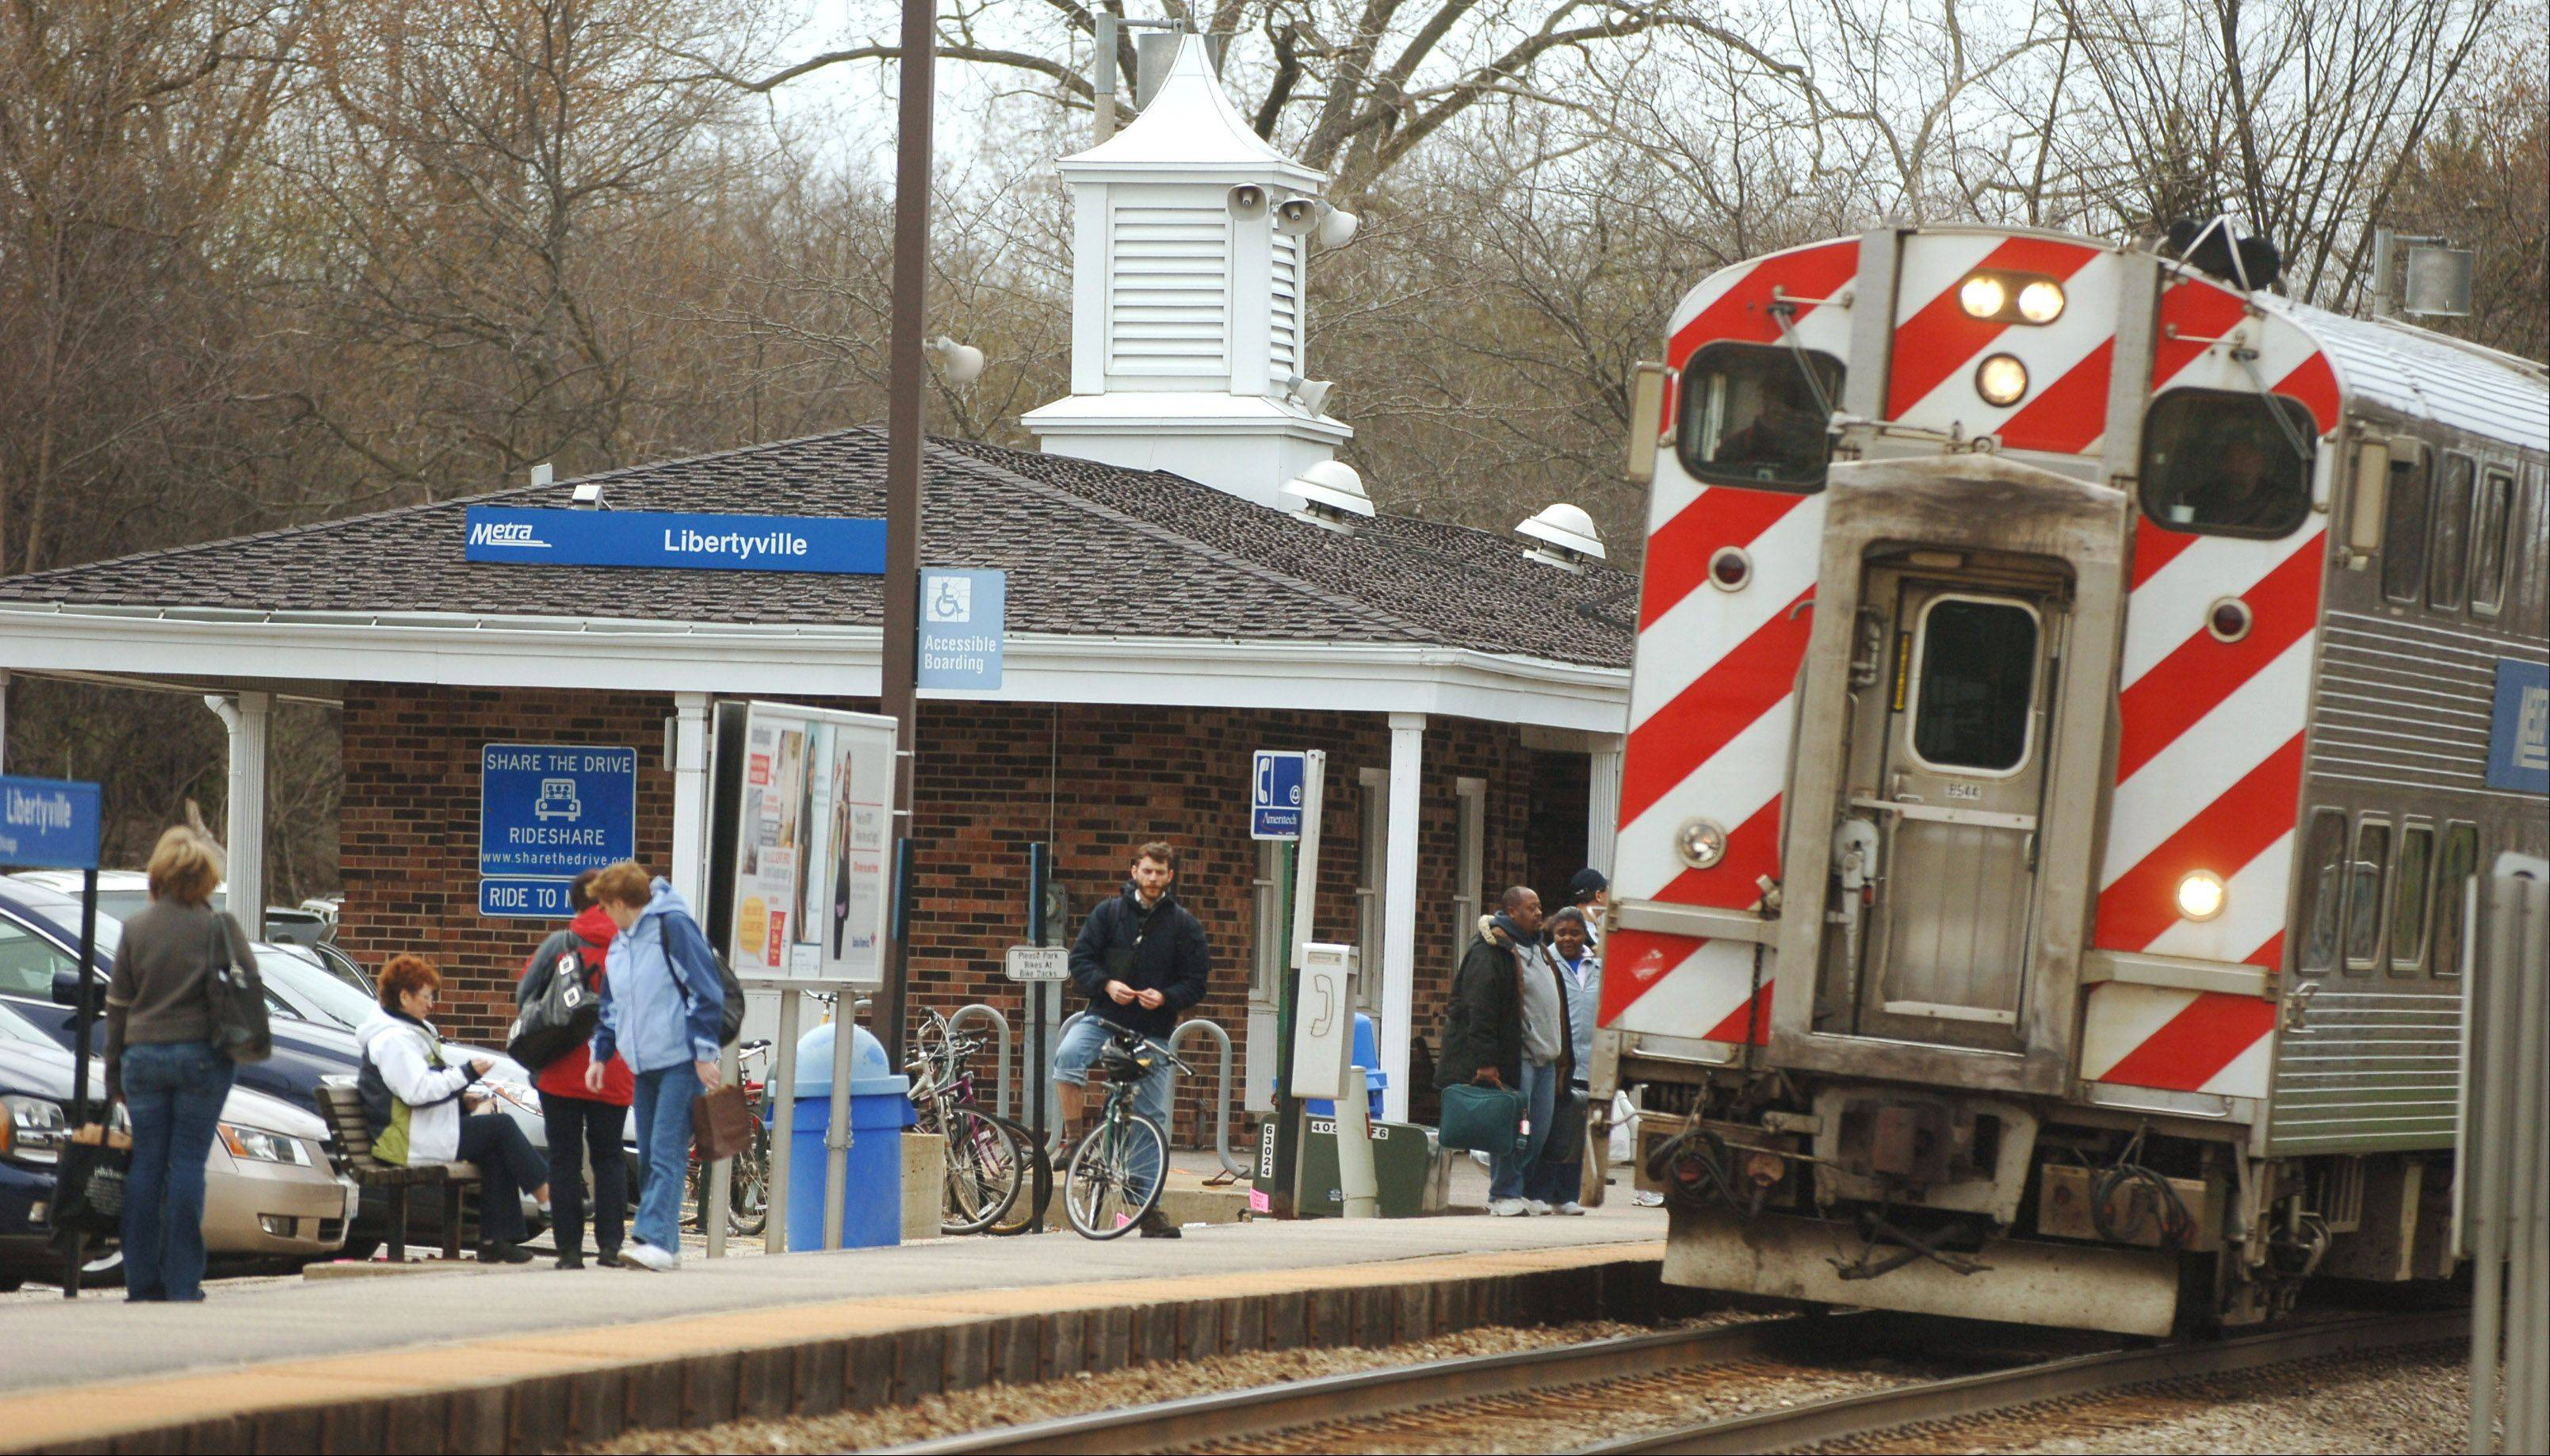 Metra wants your opinion on proposed changes to the Milwaukee West line and the Milwaukee North, which runs through downtown Libertyville.